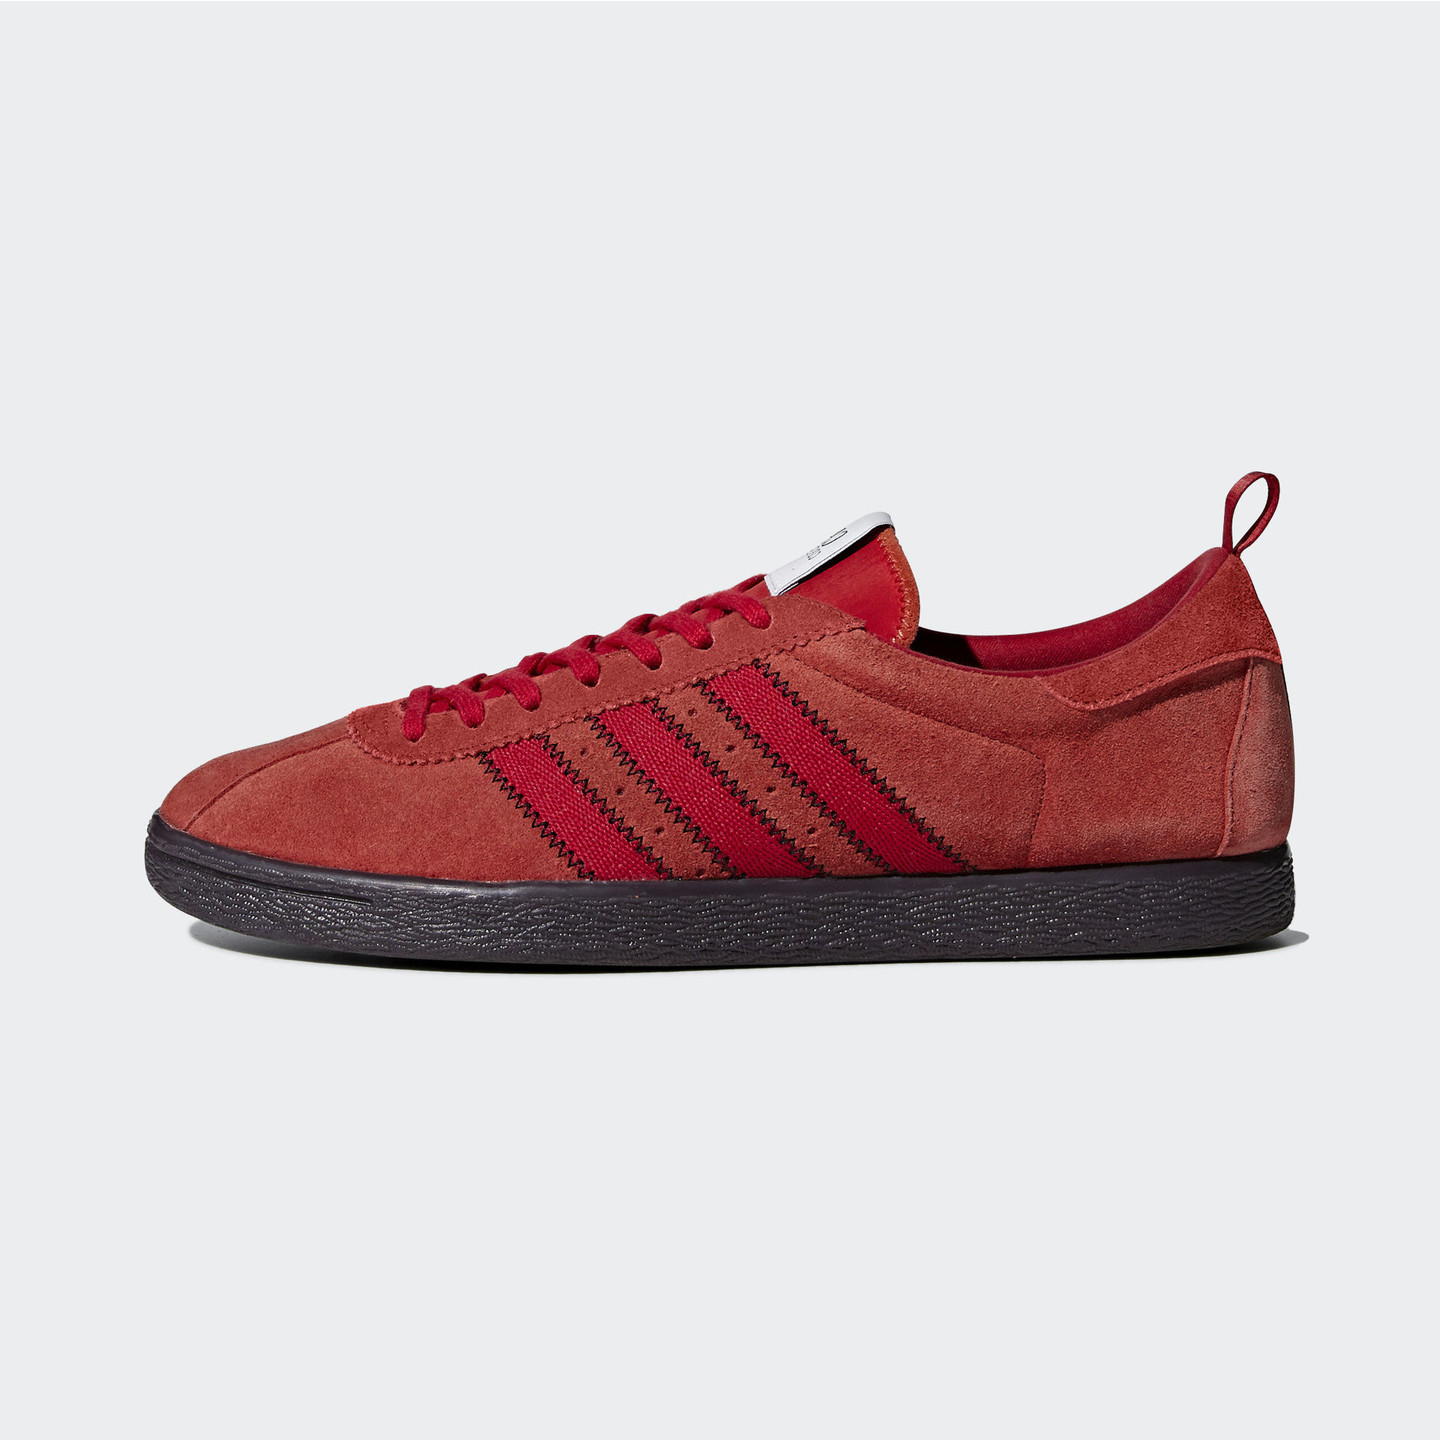 Adidas C.P. Company Tobacco Brick / Red Night / Surf Red BD7959